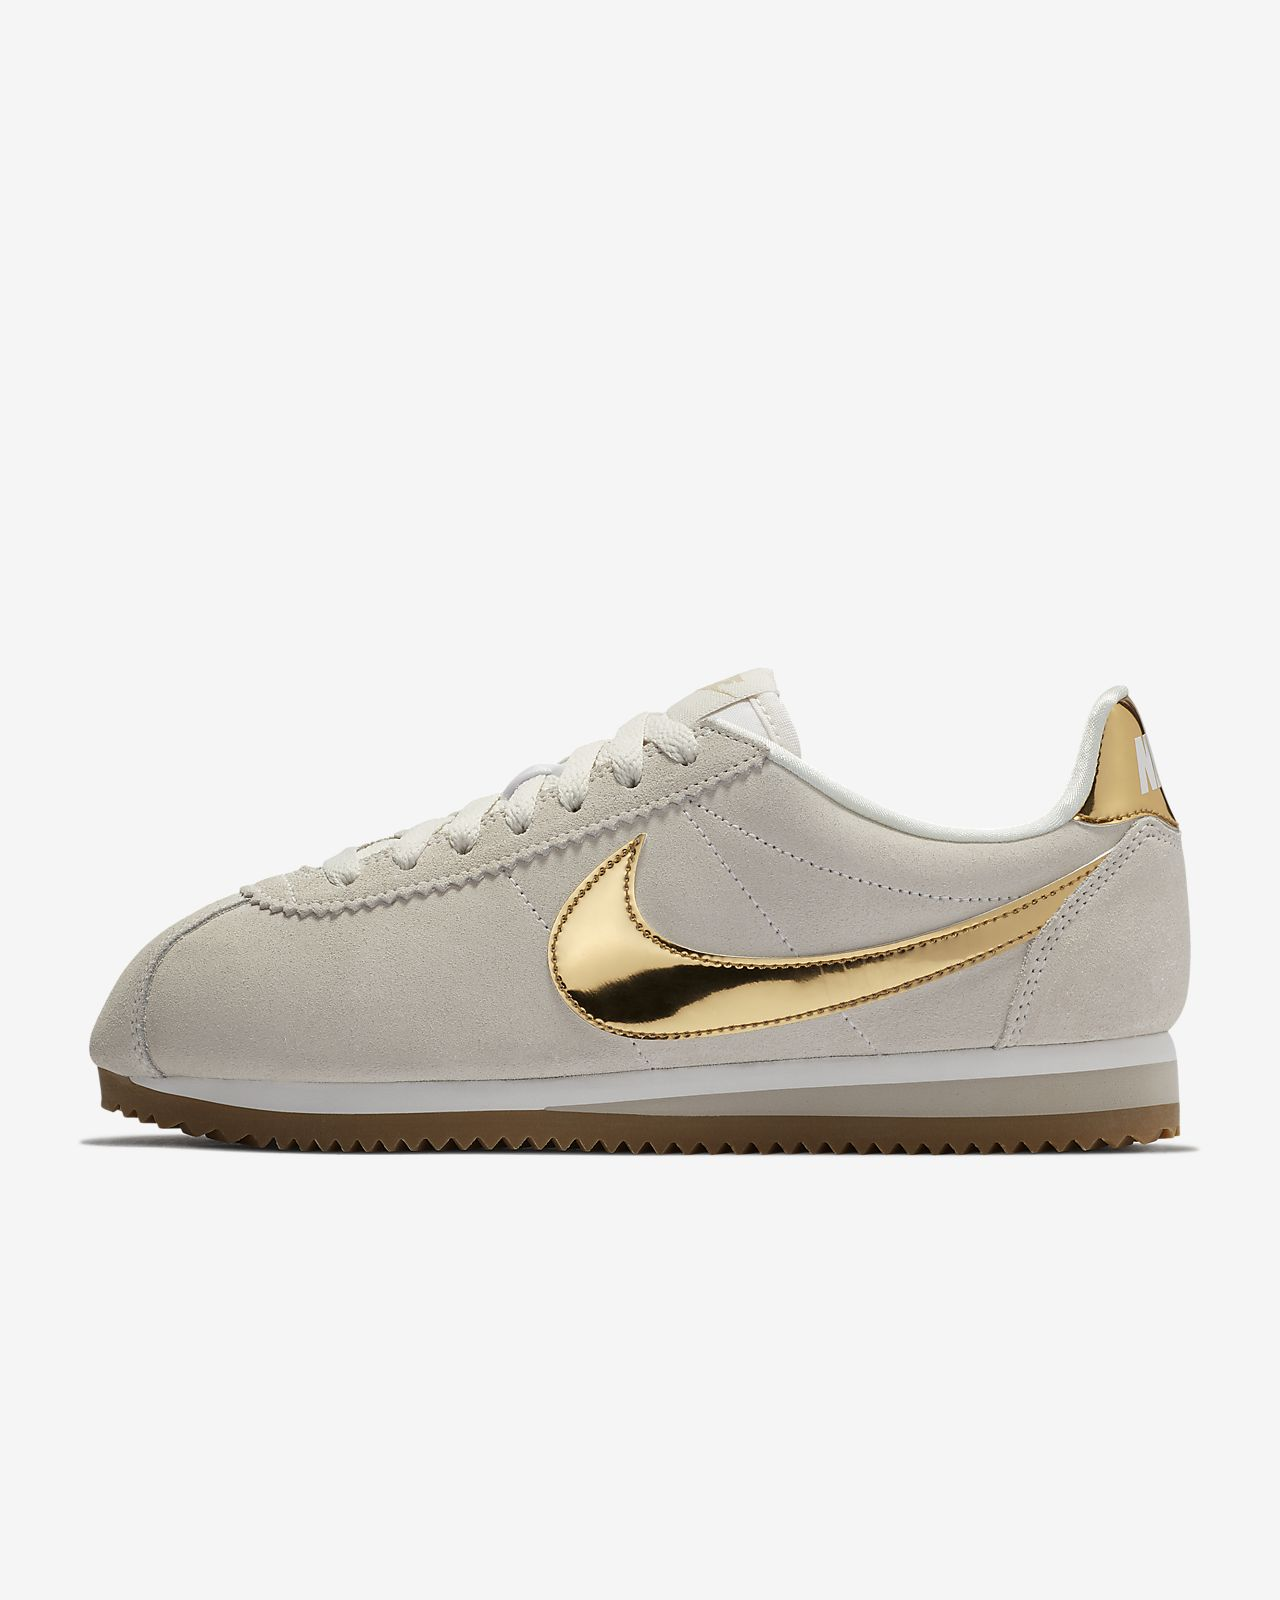 premium selection d644b 07a44 ... where can i buy nike cortez se womens shoe b6871 f8837